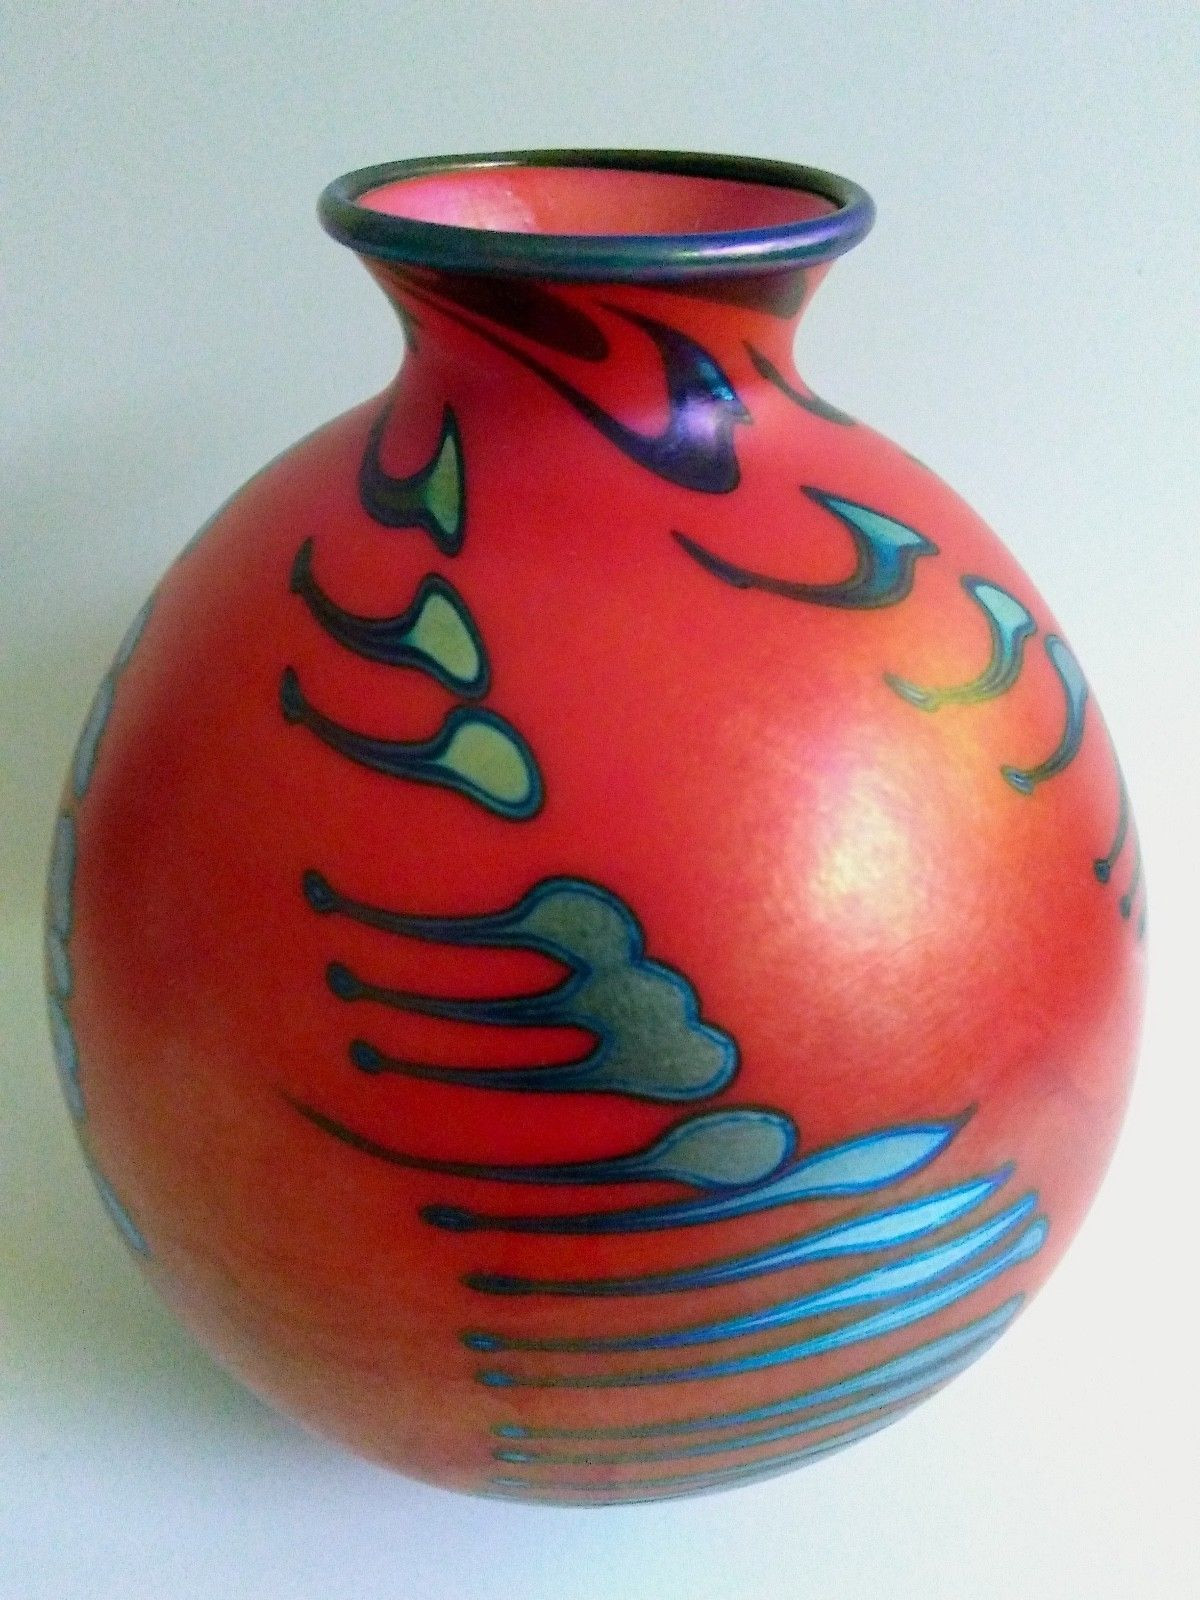 gold urn vase wholesale of 43 lenox vase with gold trim the weekly world regarding lenox vase with gold trim inspirational signed vintage charles lotton art glass vase mandarin red cobalt of lenox vase with gold trim